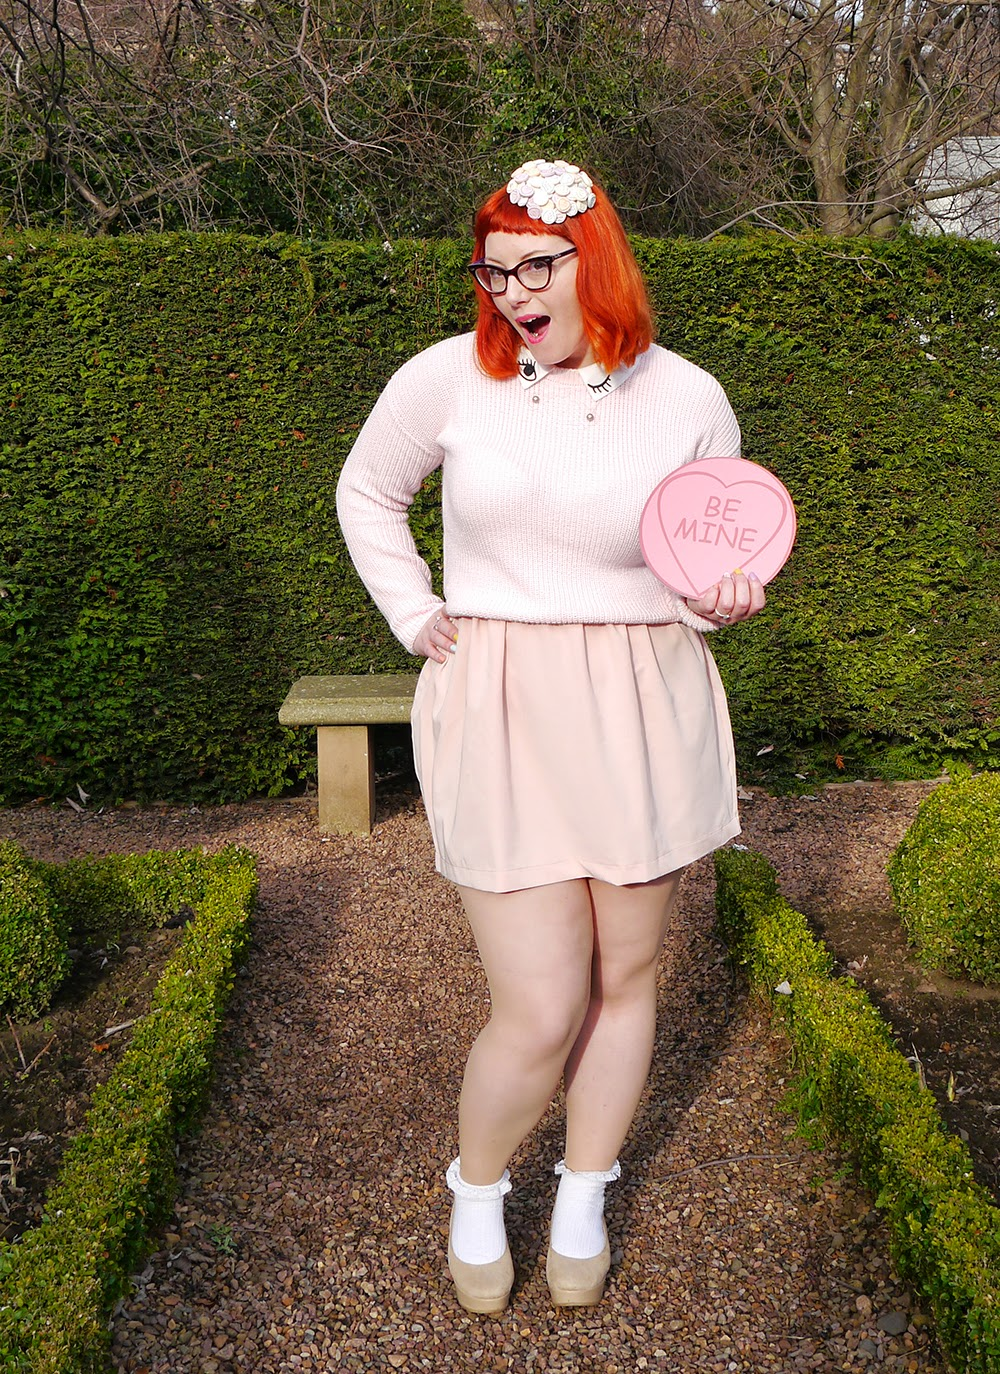 Valentine, Valentine's Day, Love Heart sweets, Sweet Inspired Outfit. Valentine's Day style, Valentine outfit, All pink outfit inspiration, She Inside winking jumper, Wear Eponymous pink skirt, H&M nude flatform shoes, Topshop frilly socks, Charcot necklace, giant lovehearts, Lovehearts headpiece, sweet hat, sweetie fascinator, Scottish Blogger